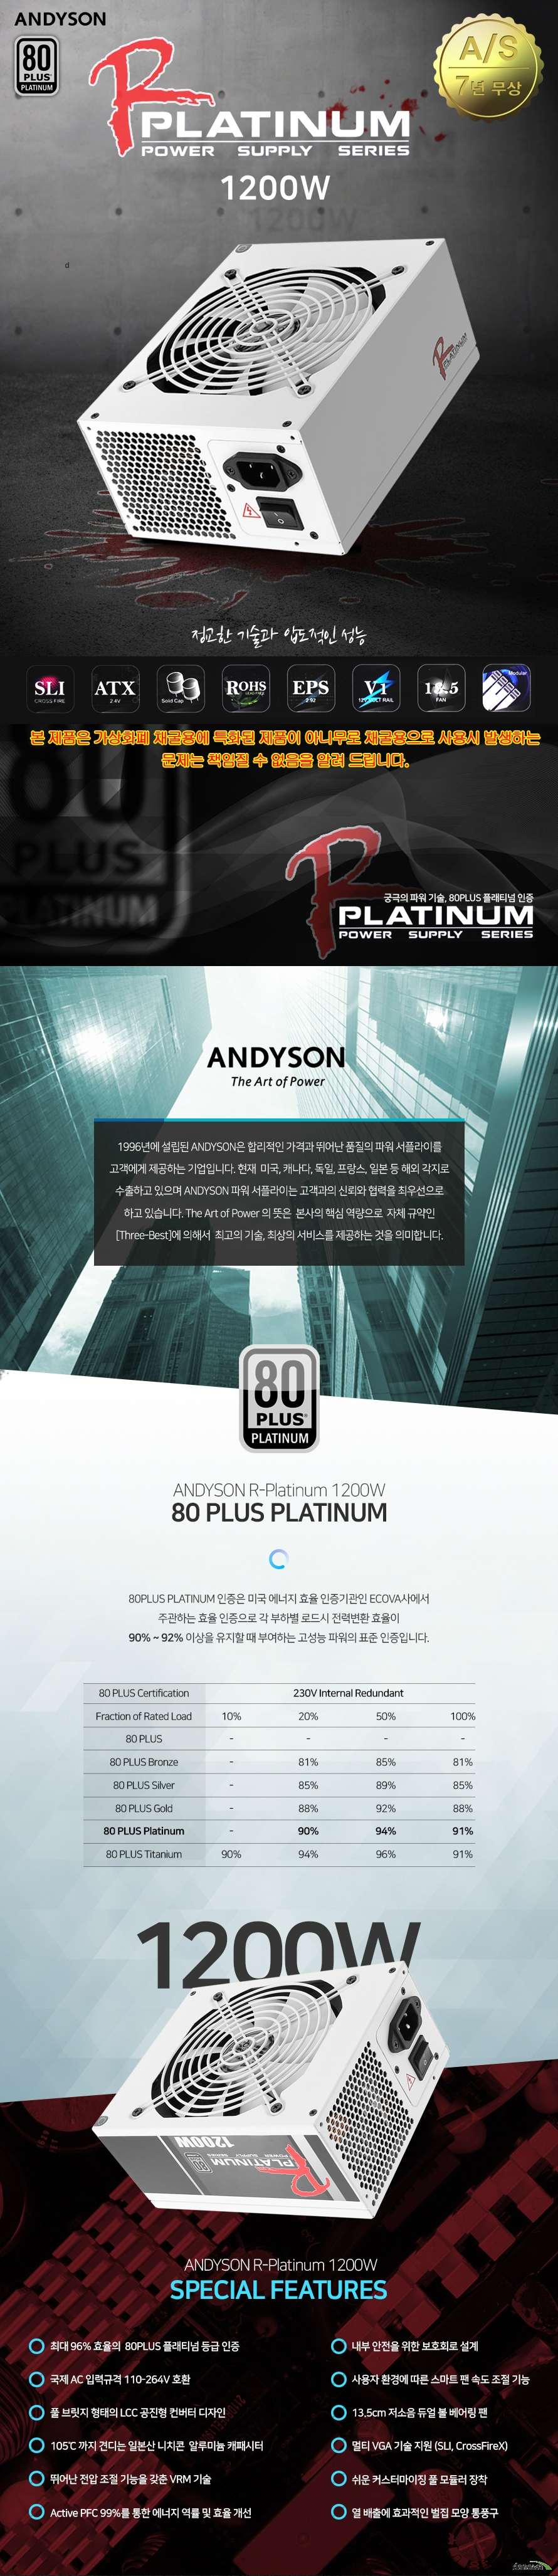 ANDYSON R 1200W PLATINUM  WHITE  Wattage 1200w Pfc type active Operation temp 40도 Efficiency 80plus platinum,  Optic coating black Dimensions 86 mm 150mm 190mm ball bearing cooling fan  fan size 135mm fan speed 1500rpm  modular cabel management full modular cable sleeves fully sleeved  capacitors nichicon Japanese mtbf 10000000 hours  hold up time 16ms ocp ovp uvp scp opp supports  intel kabylake processors supports nvidia sli and amd crossfire x supports  kc msip rei oen ad 1200yyzz 자율안전확인인증번호 yu10631 17001   본 제품은 가상화폐 채굴에 특화되어 있는 제품이 아니므로, 가상화폐 채굴로 인한 문제 발생에는 책임지지 않습니다.